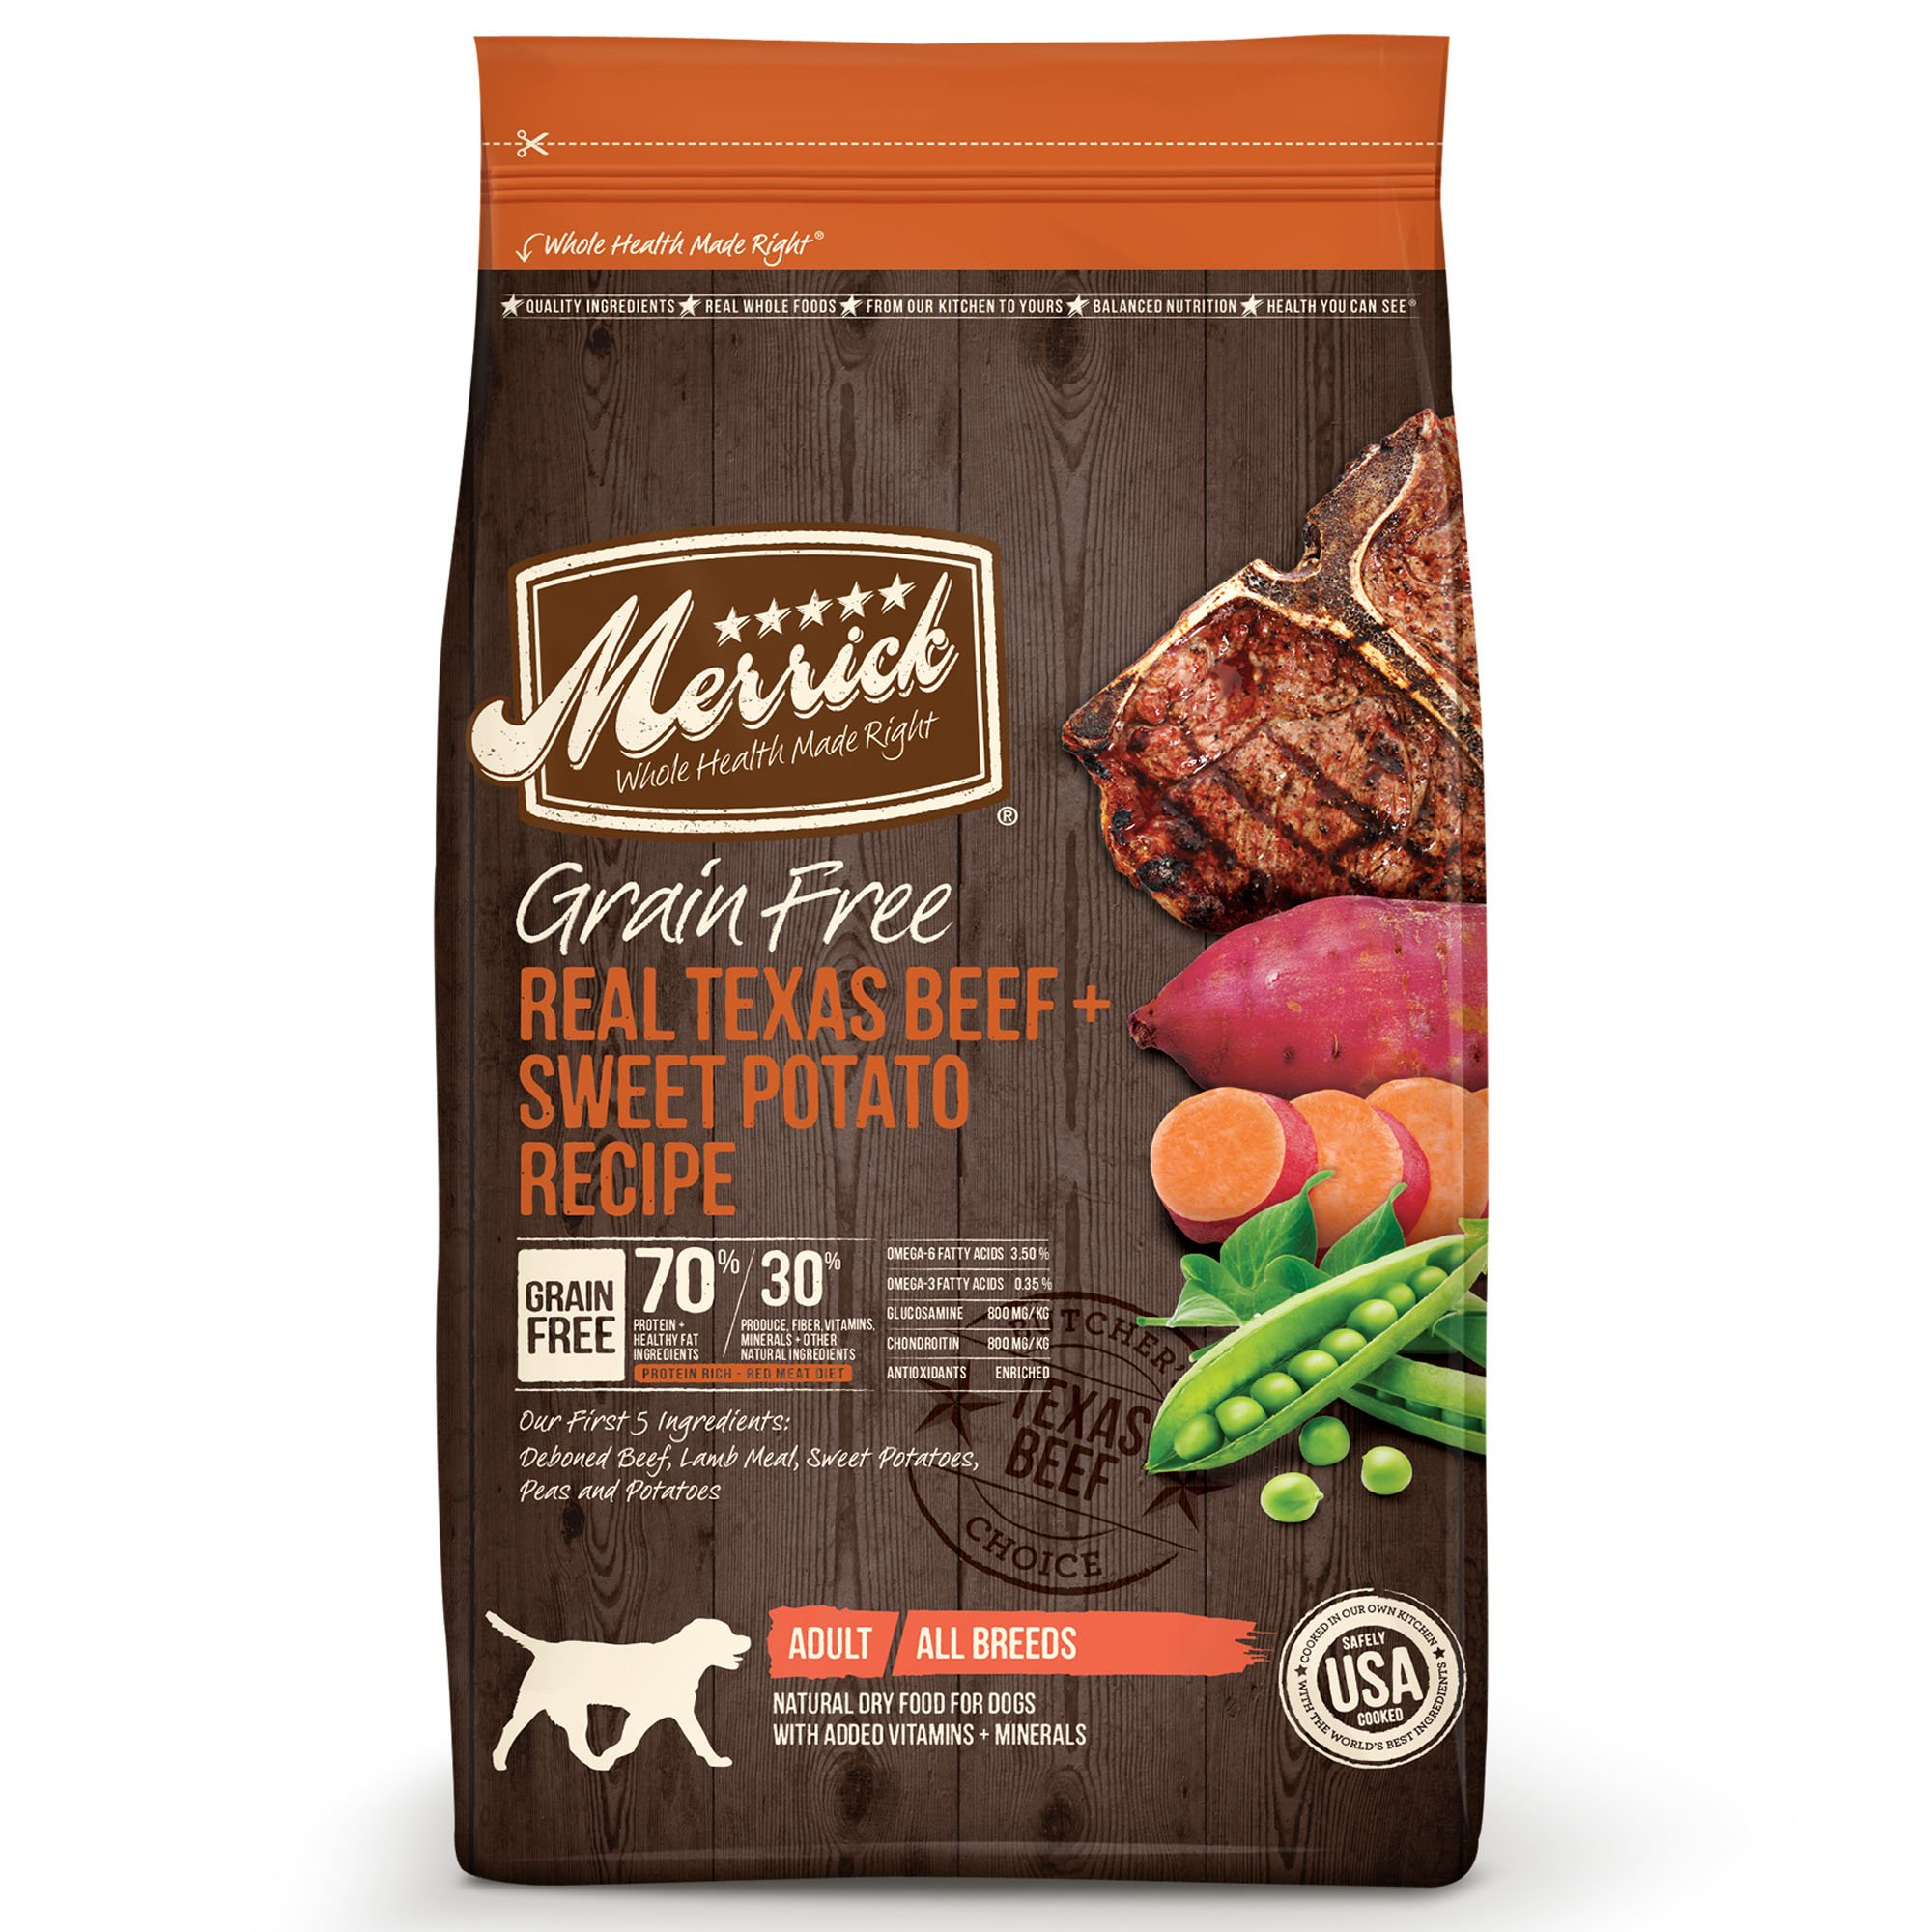 Merrick Grain Free Real Texas Beef & Sweet Potato Dry Dog Food, 25 lbs.